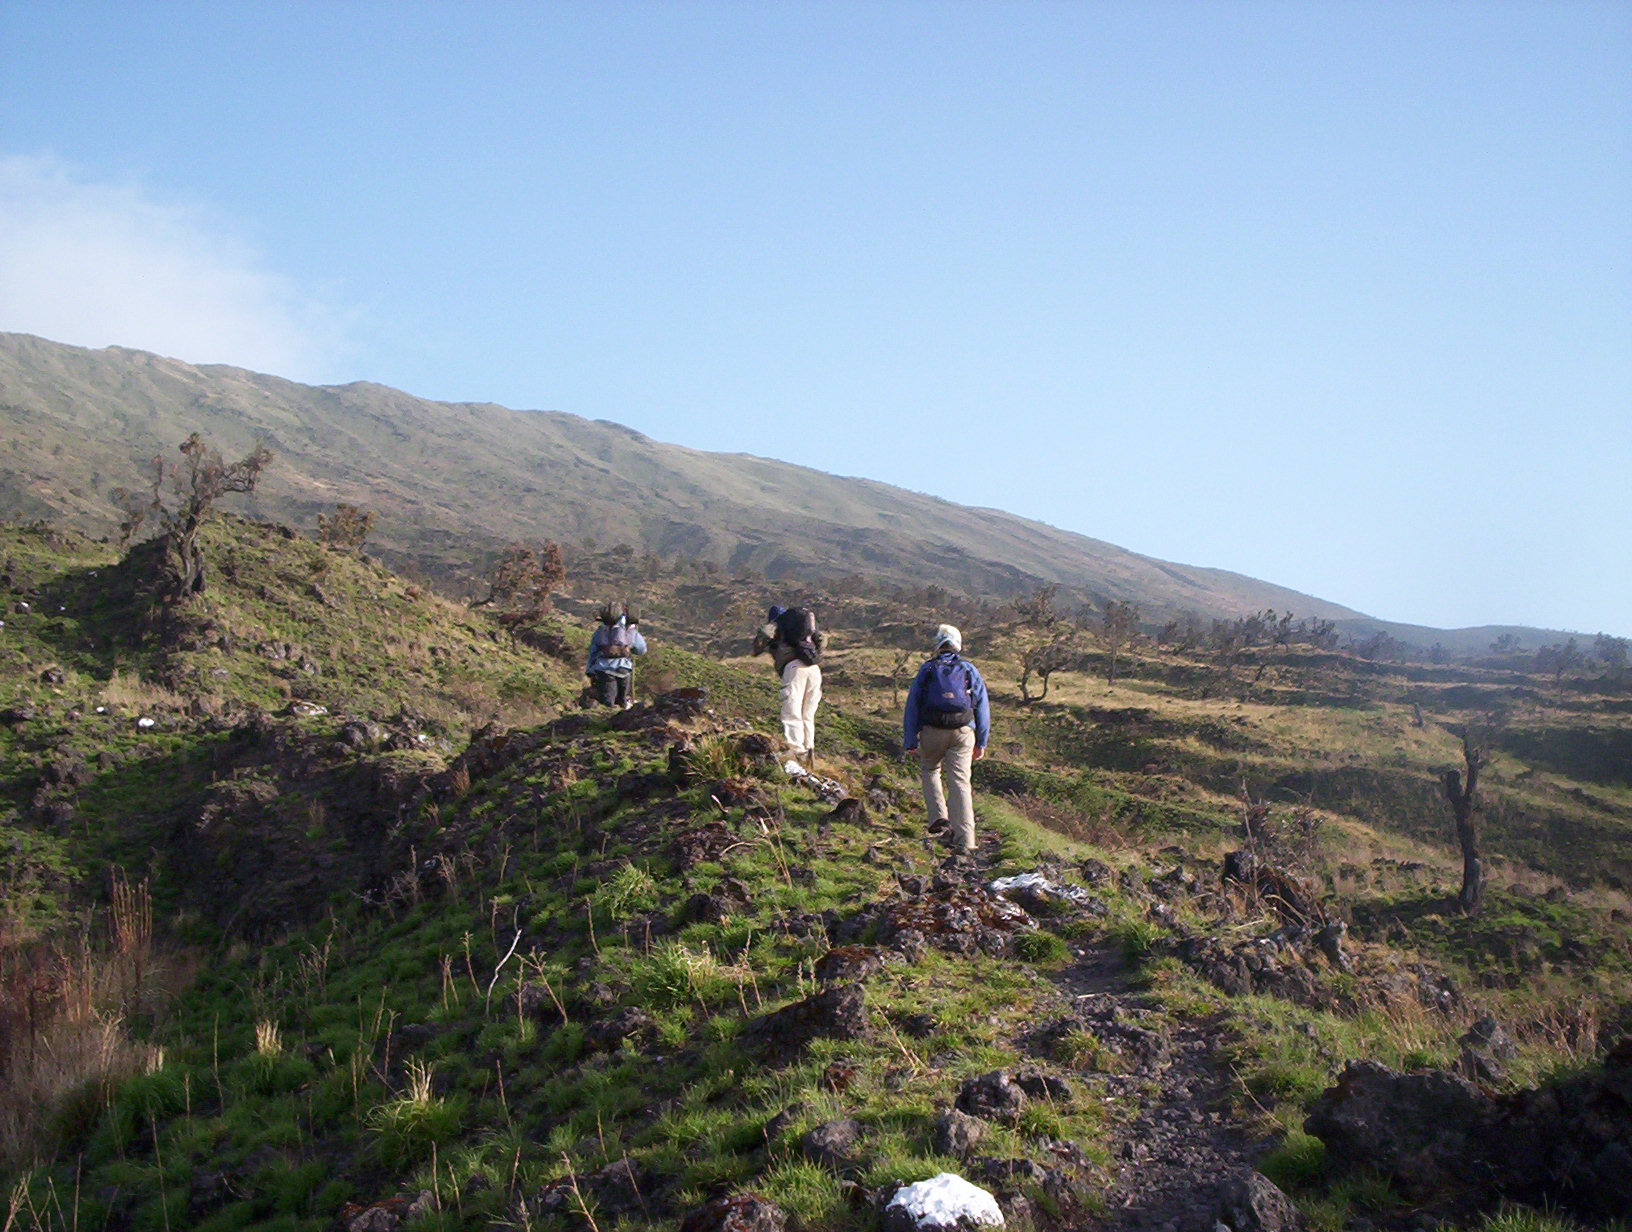 Tourists climbing Mount Cameroon Bakweri People:  Ancient Fierce Fighters, Traditionally Spiritual, Custom-Abiding And Agrarian Bantu People Of Mount Cameroon